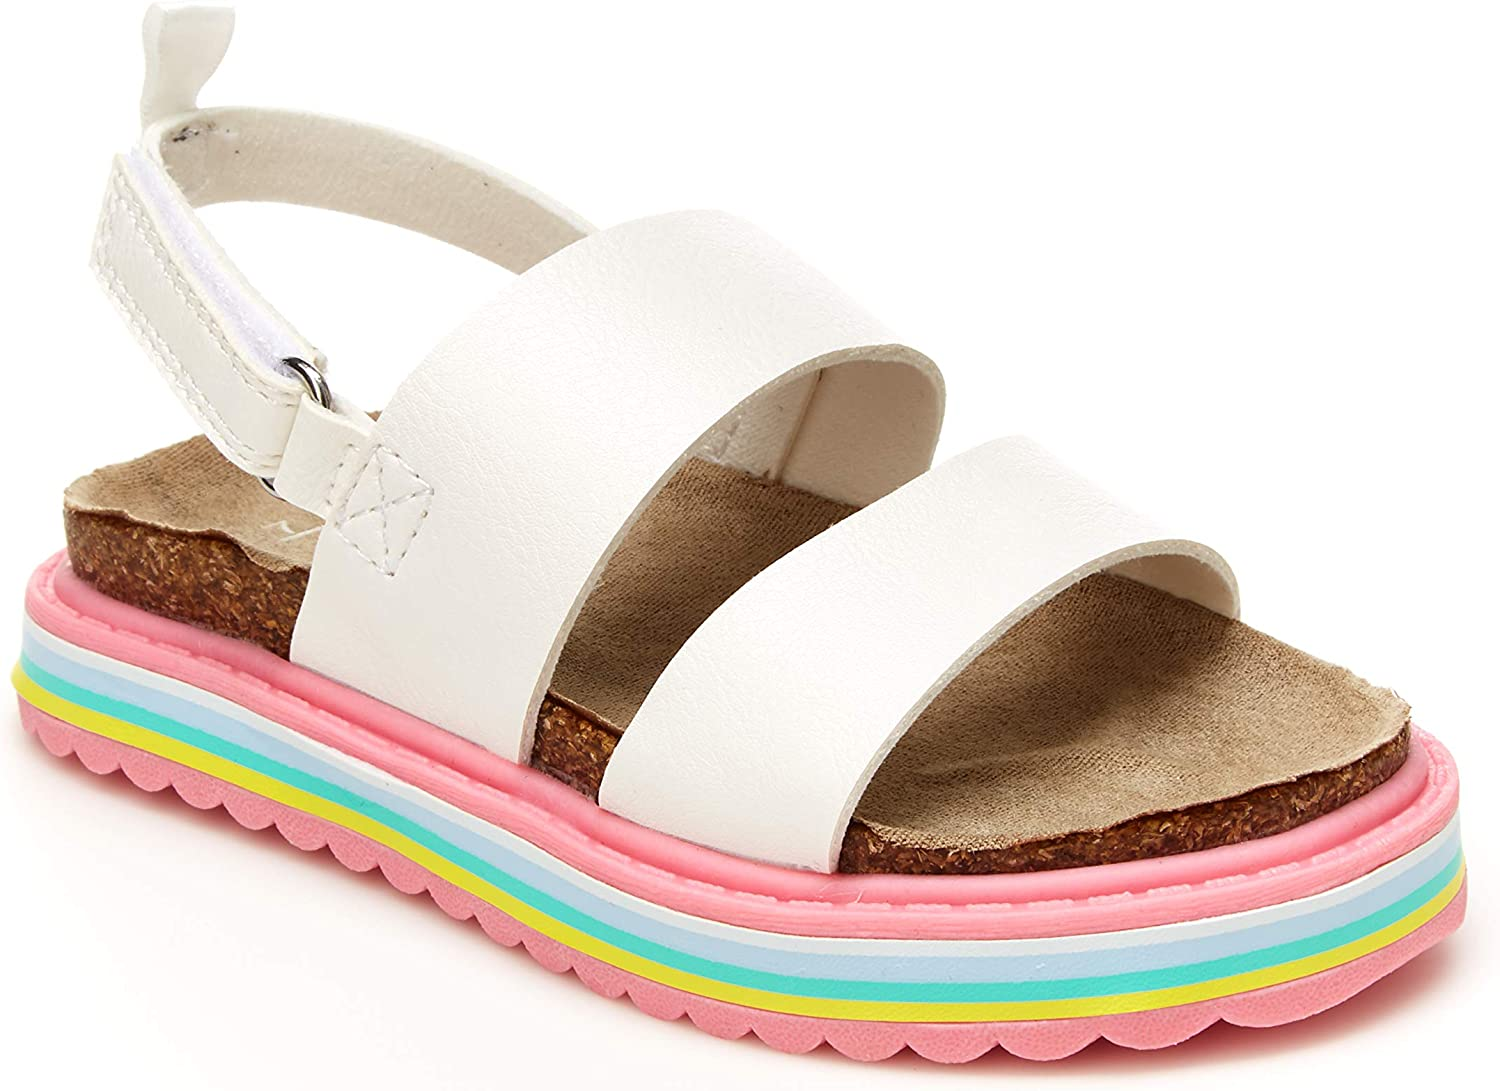 Max 69% OFF Carter's Unisex-Child Sandal Carlyle Special Campaign